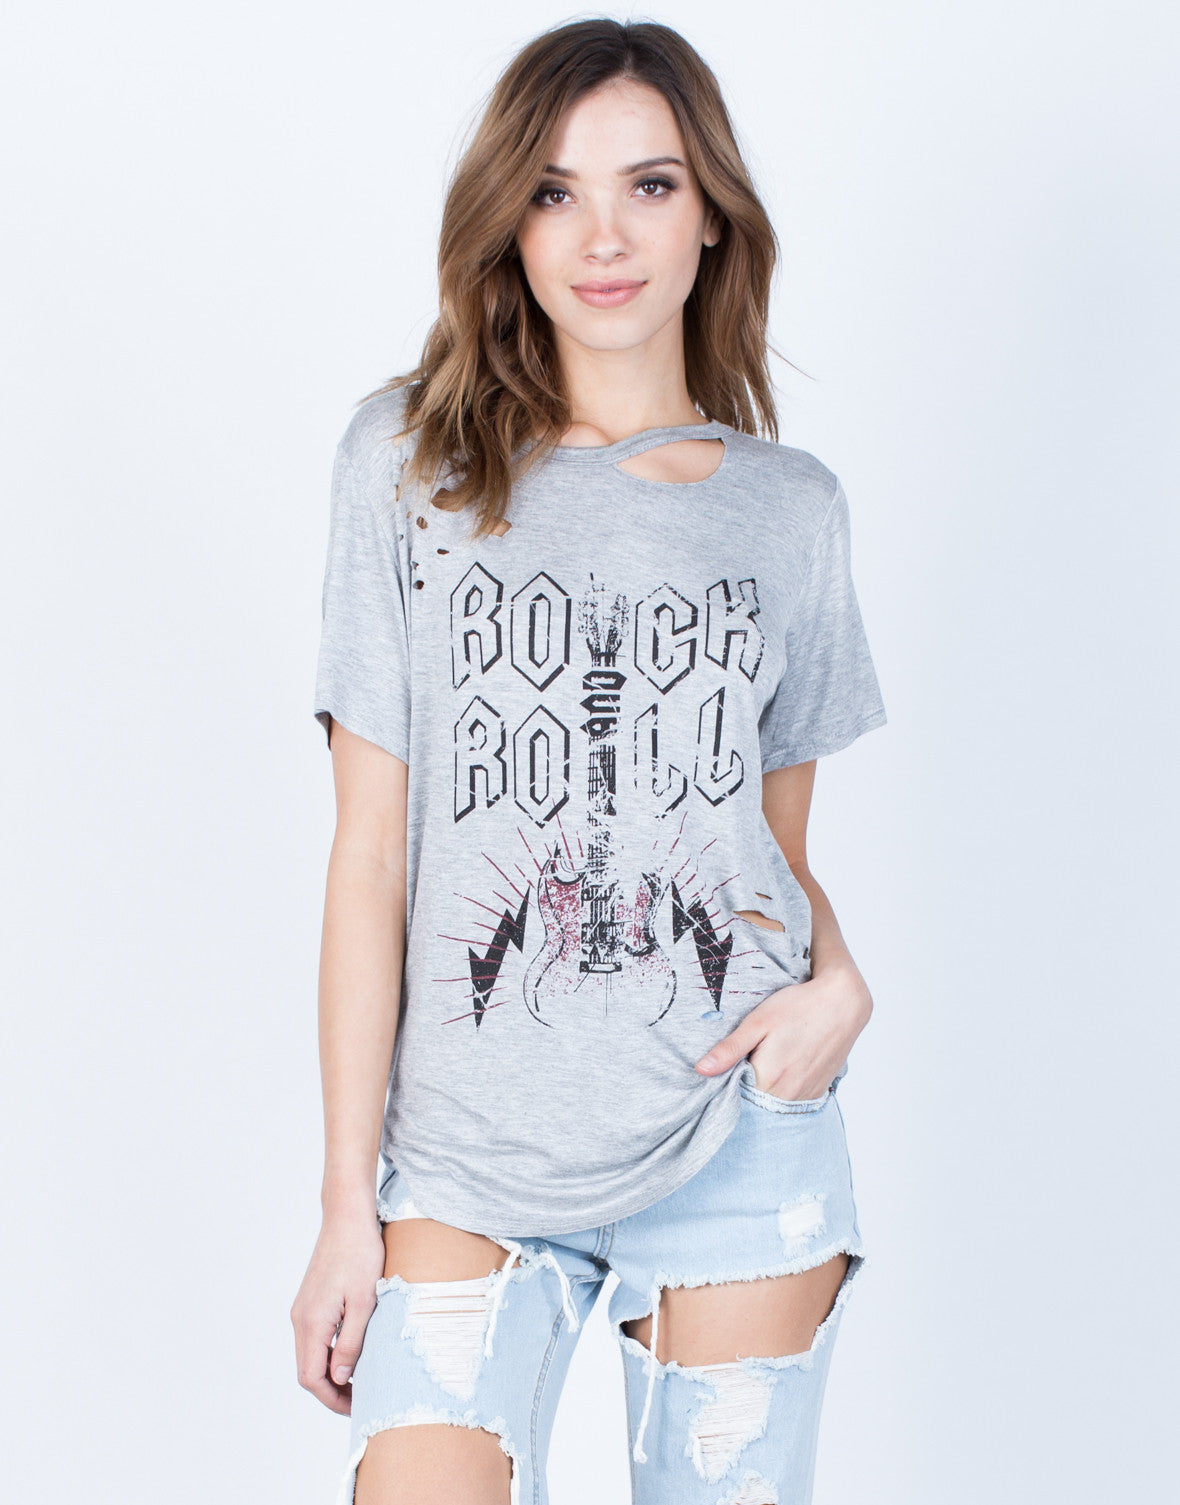 Front View of Distressed Rock n Roll Tee